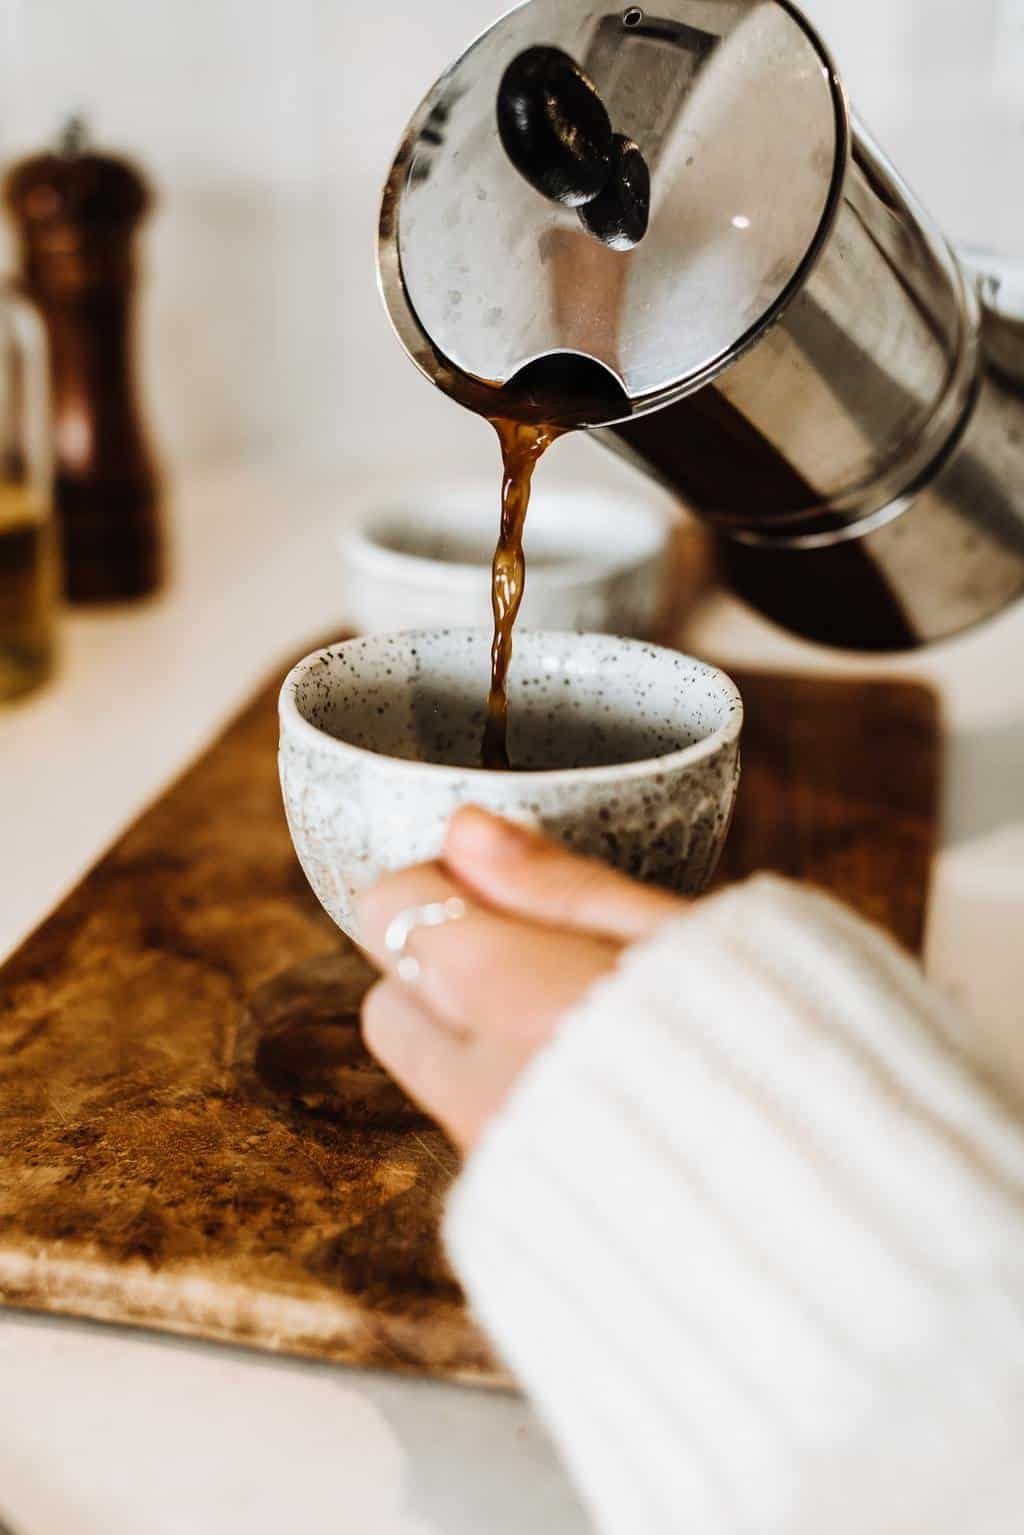 Healthiest Way to Brew Coffee at Home